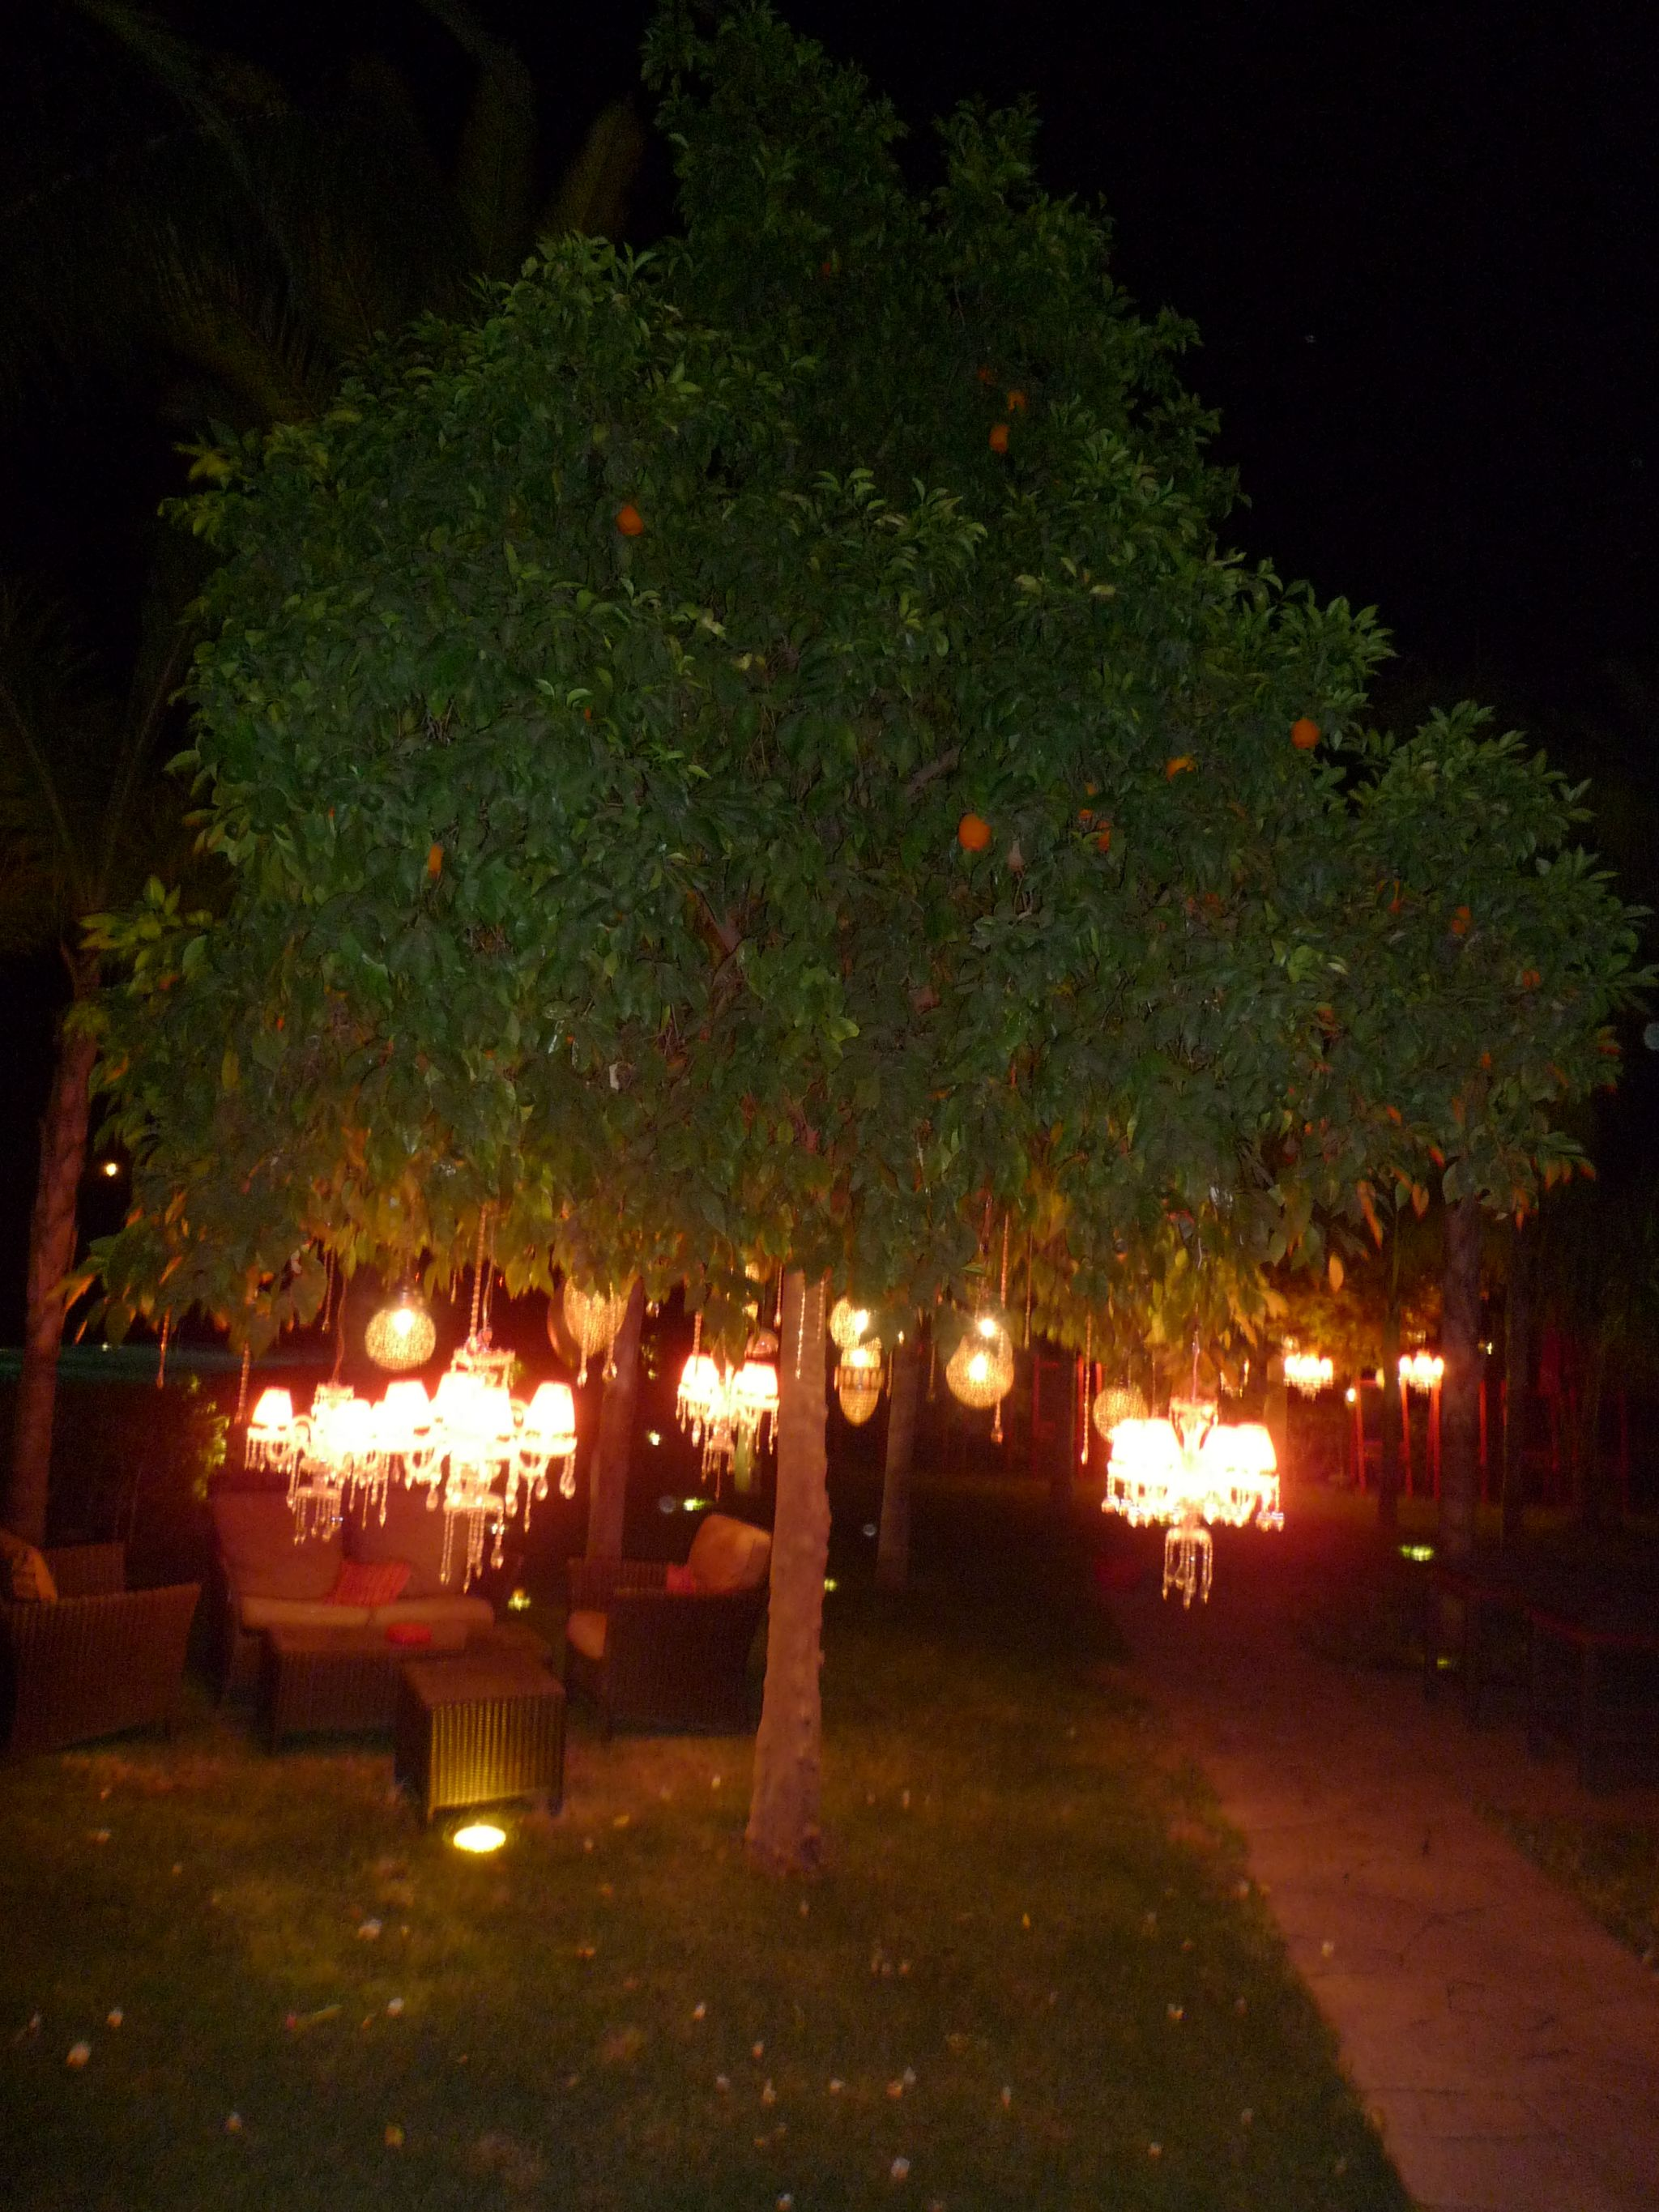 Tree with Moroccan lamps